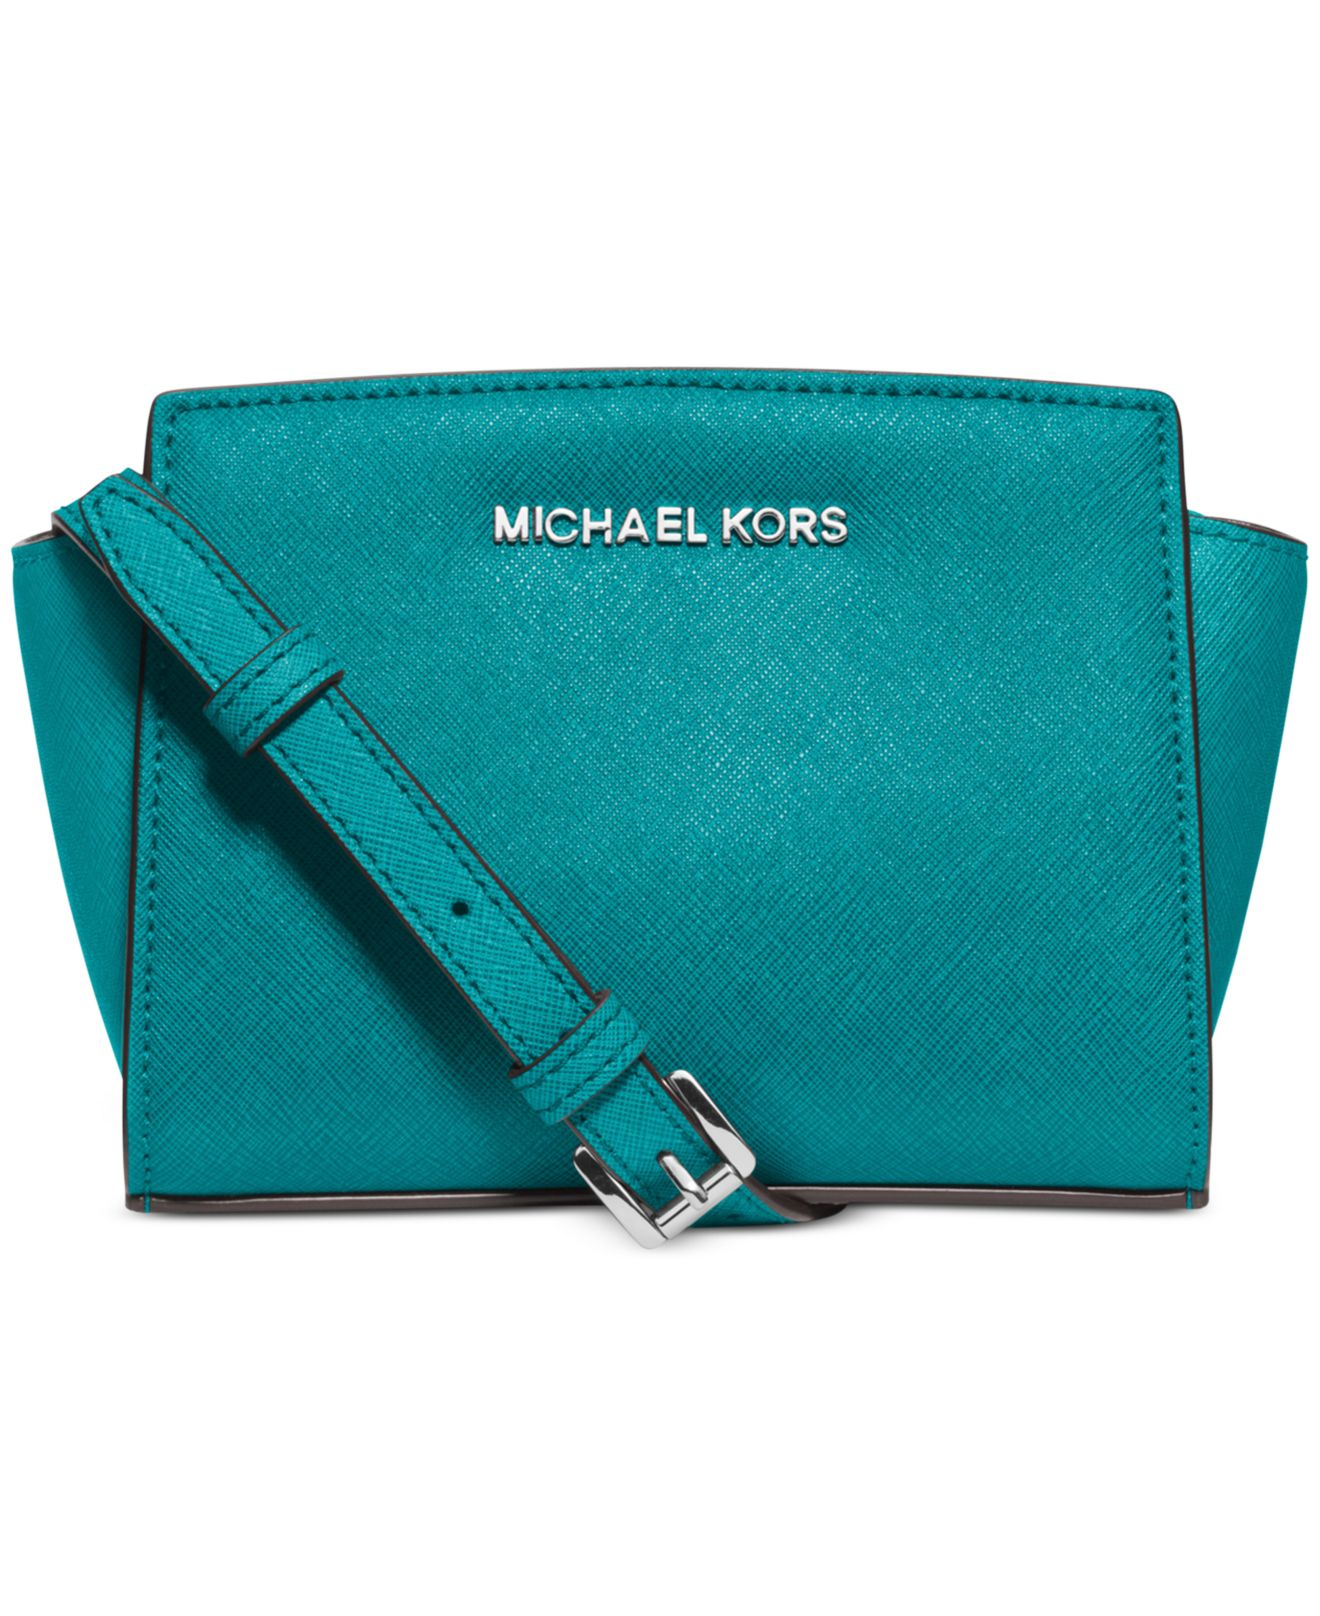 b4cac3f1e278 Lyst - Michael Kors Michael Selma Mini Messenger Bag in Blue